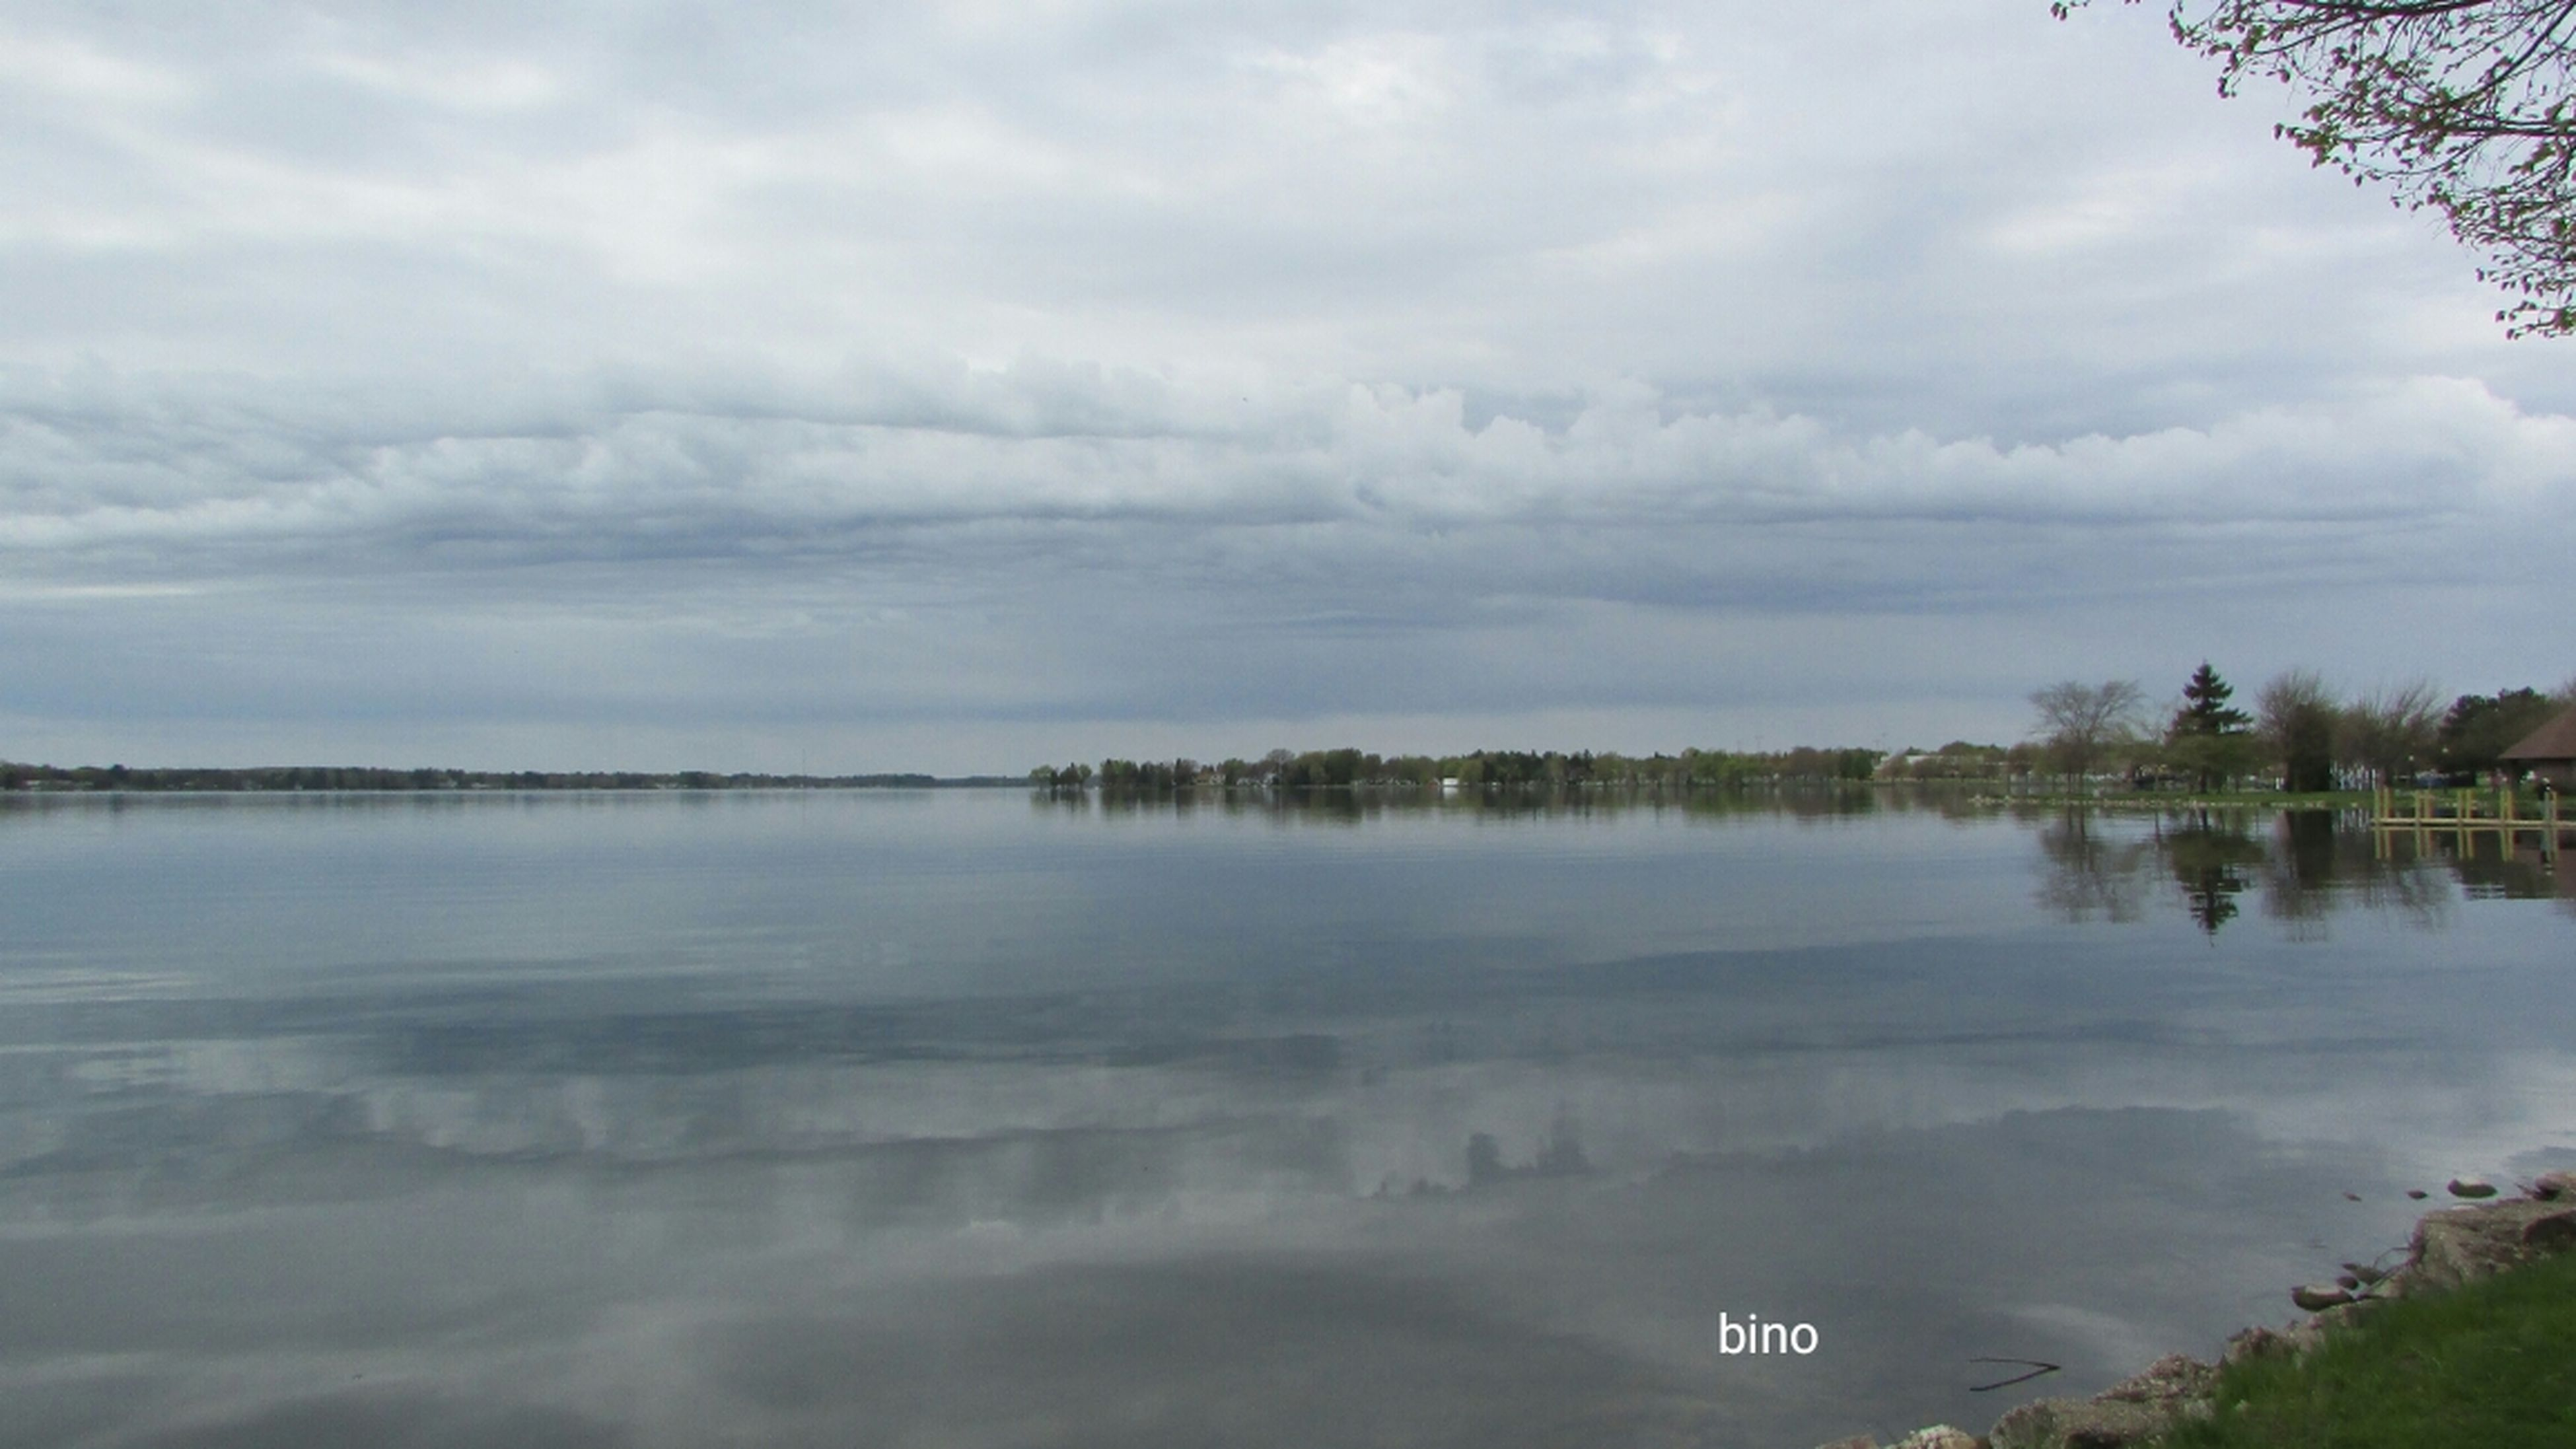 water, reflection, tranquility, nature, sky, tranquil scene, scenics, outdoors, no people, beauty in nature, cloud - sky, lake, day, tree